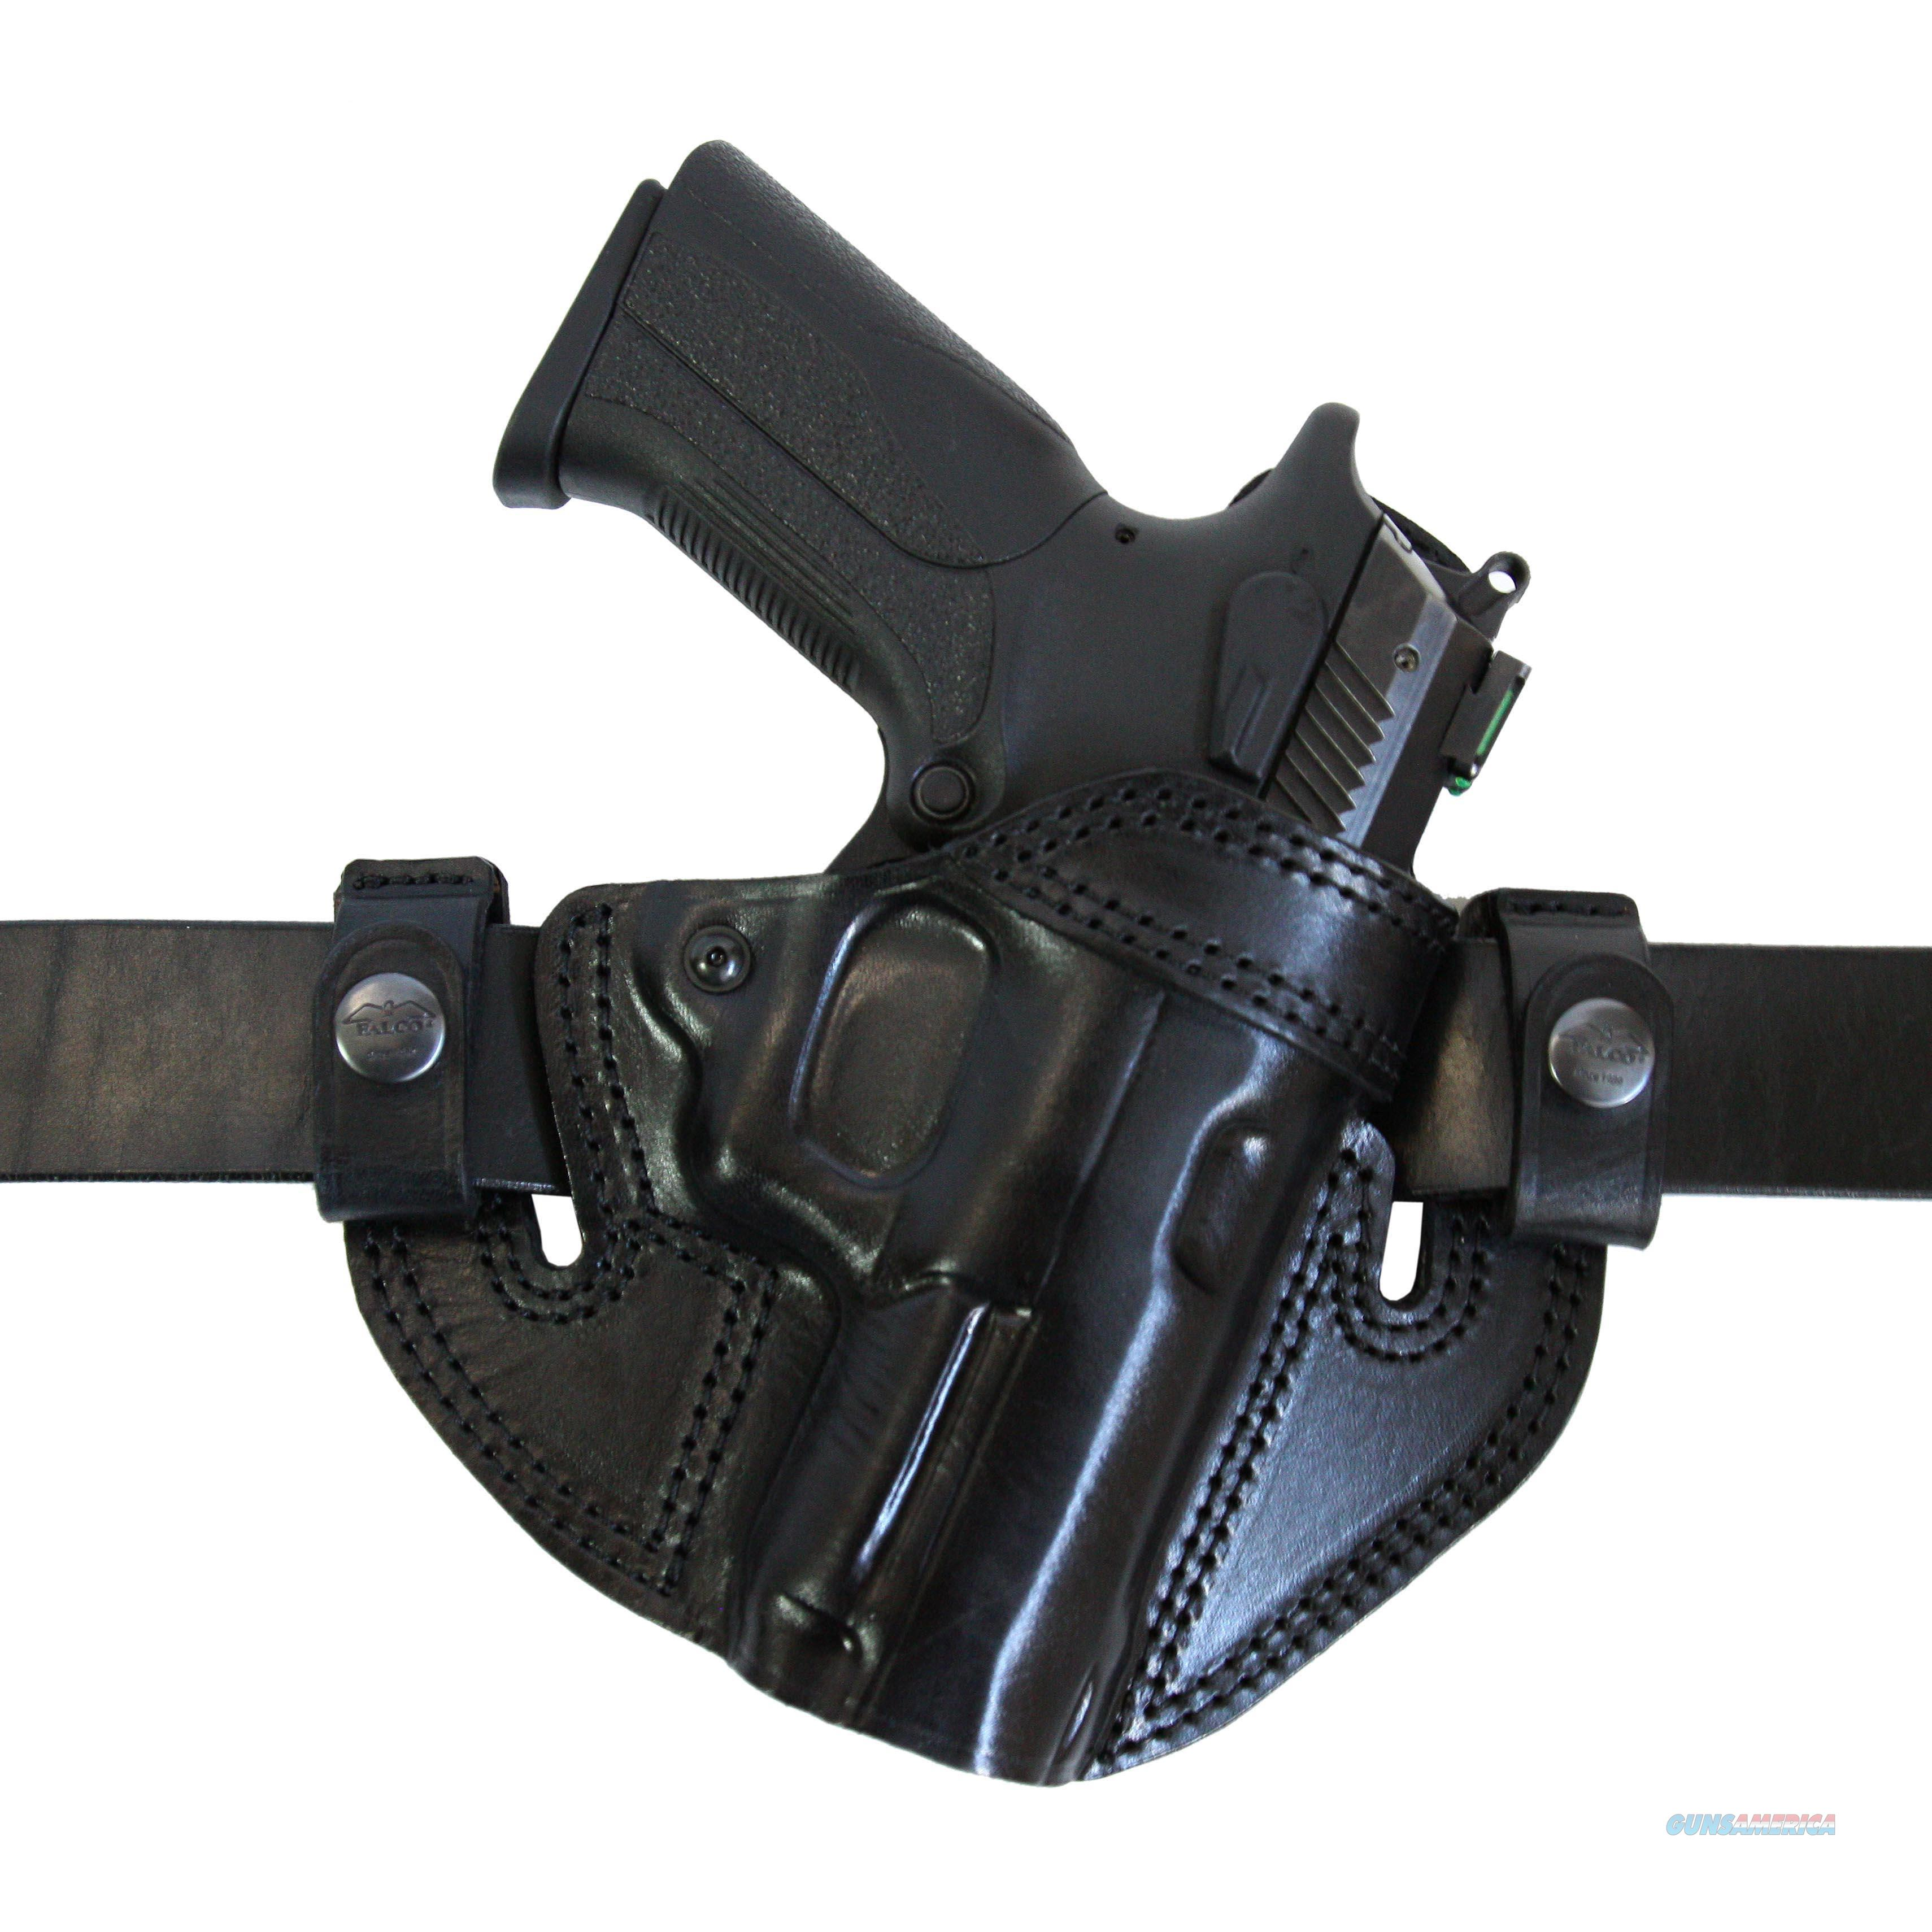 IWB / OWB Leather Gun Holster  CZ 75D Compact  Non-Guns > Holsters and Gunleather > Concealed Carry